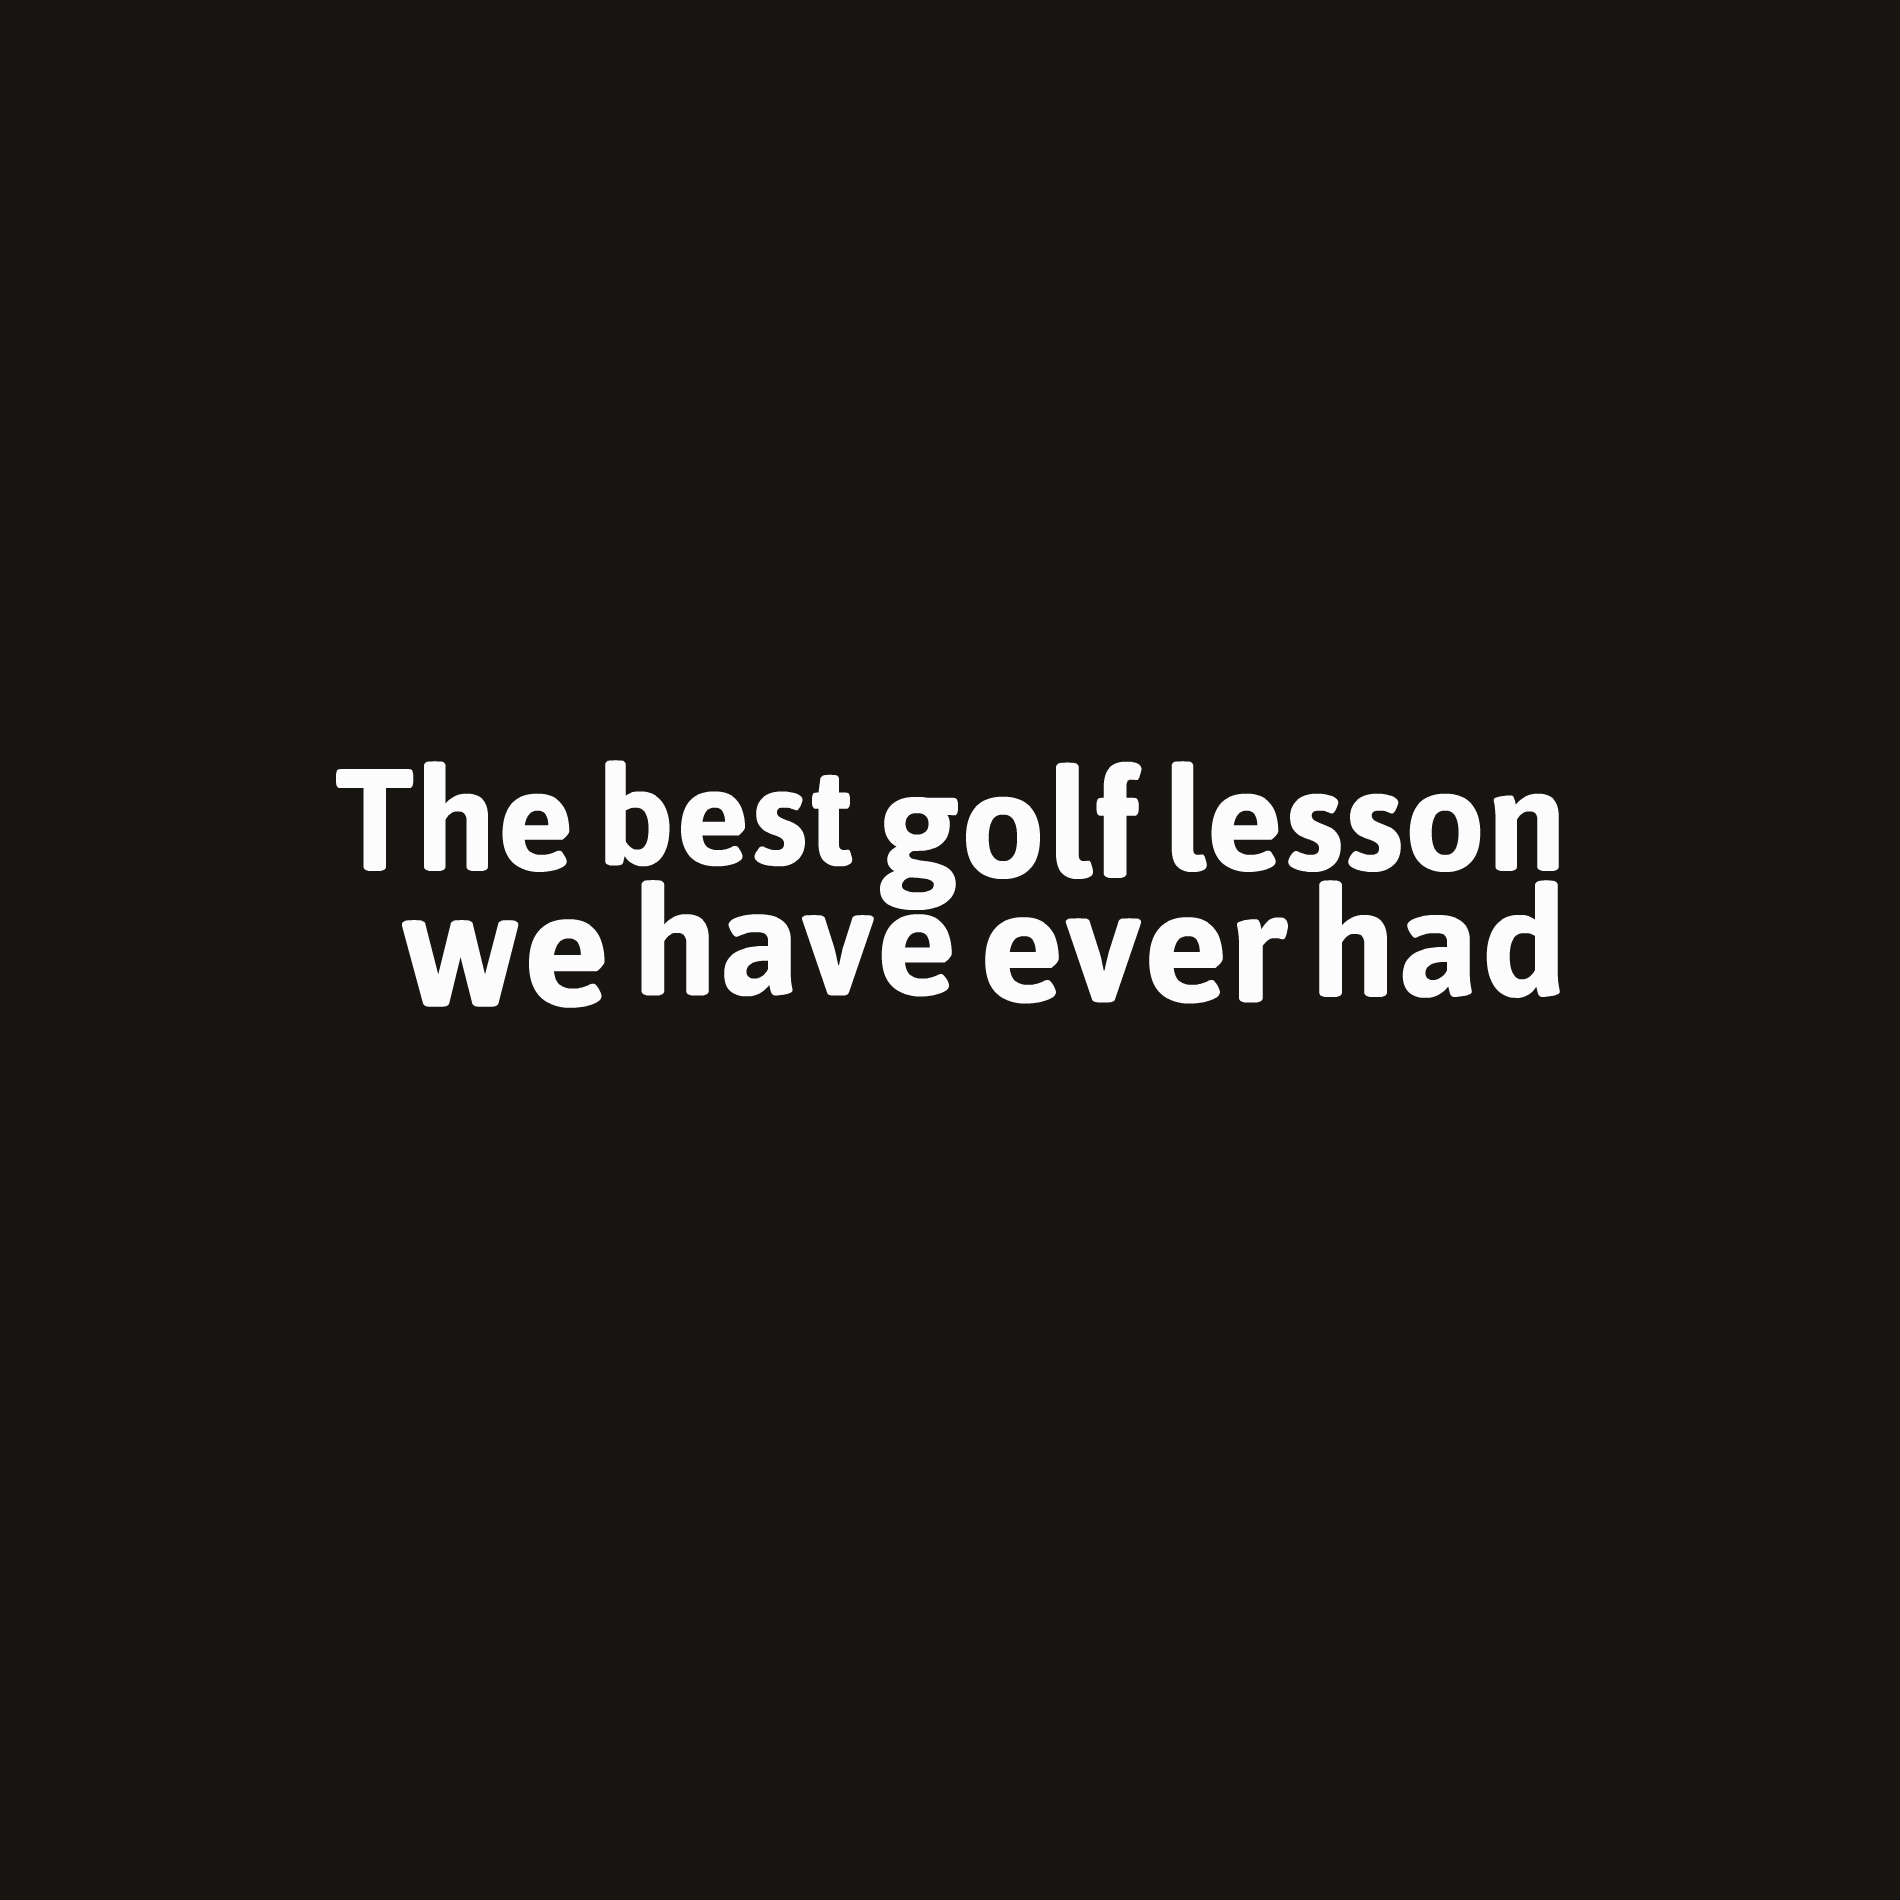 Quotes About Golf The Best Golf Lesson We Have Ever Had  Peter Arnott Golf Blog